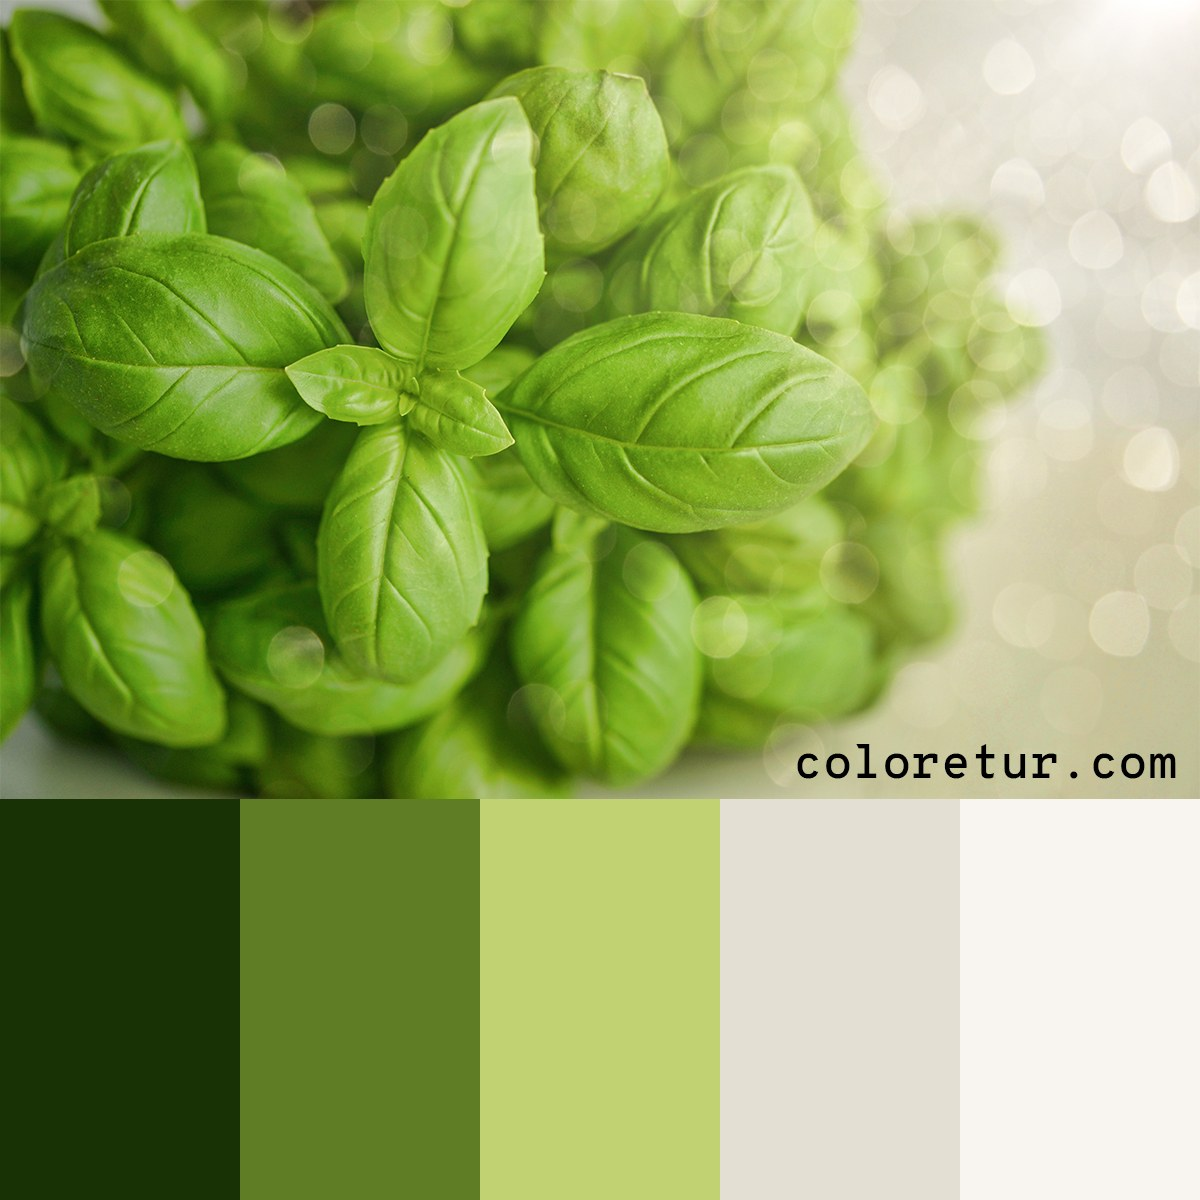 A bright, green palette composed from fresh basil leaves.